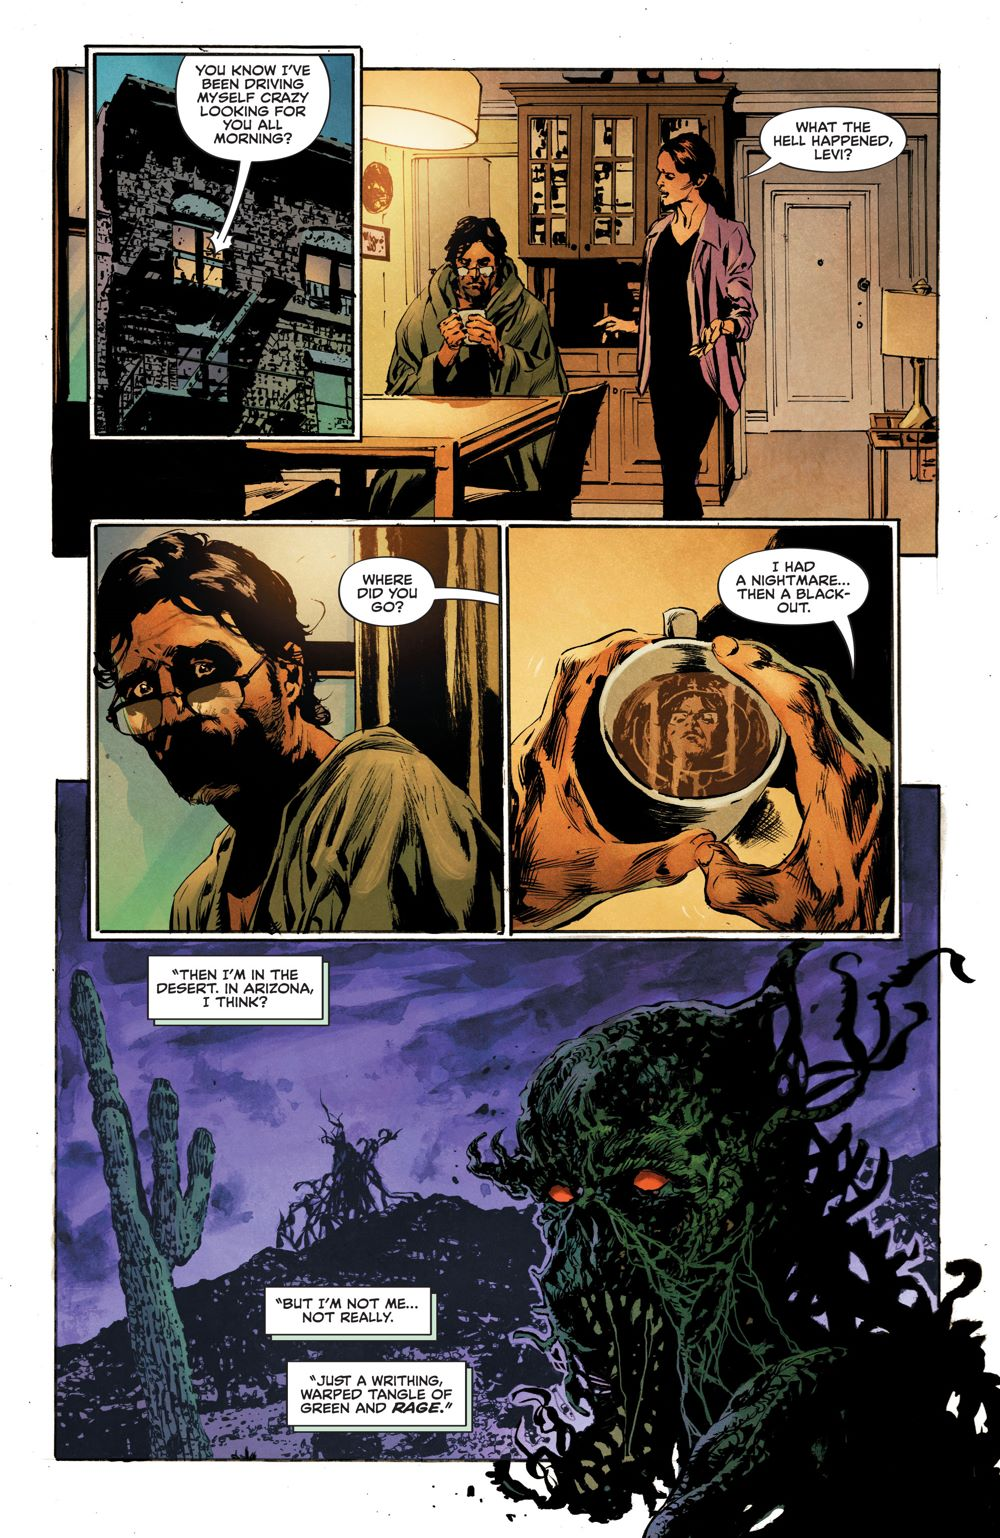 The-Swamp-Thing-2-4_6067ce4c89e505.22599986 ComicList Previews: THE SWAMP THING #2 (OF 10)